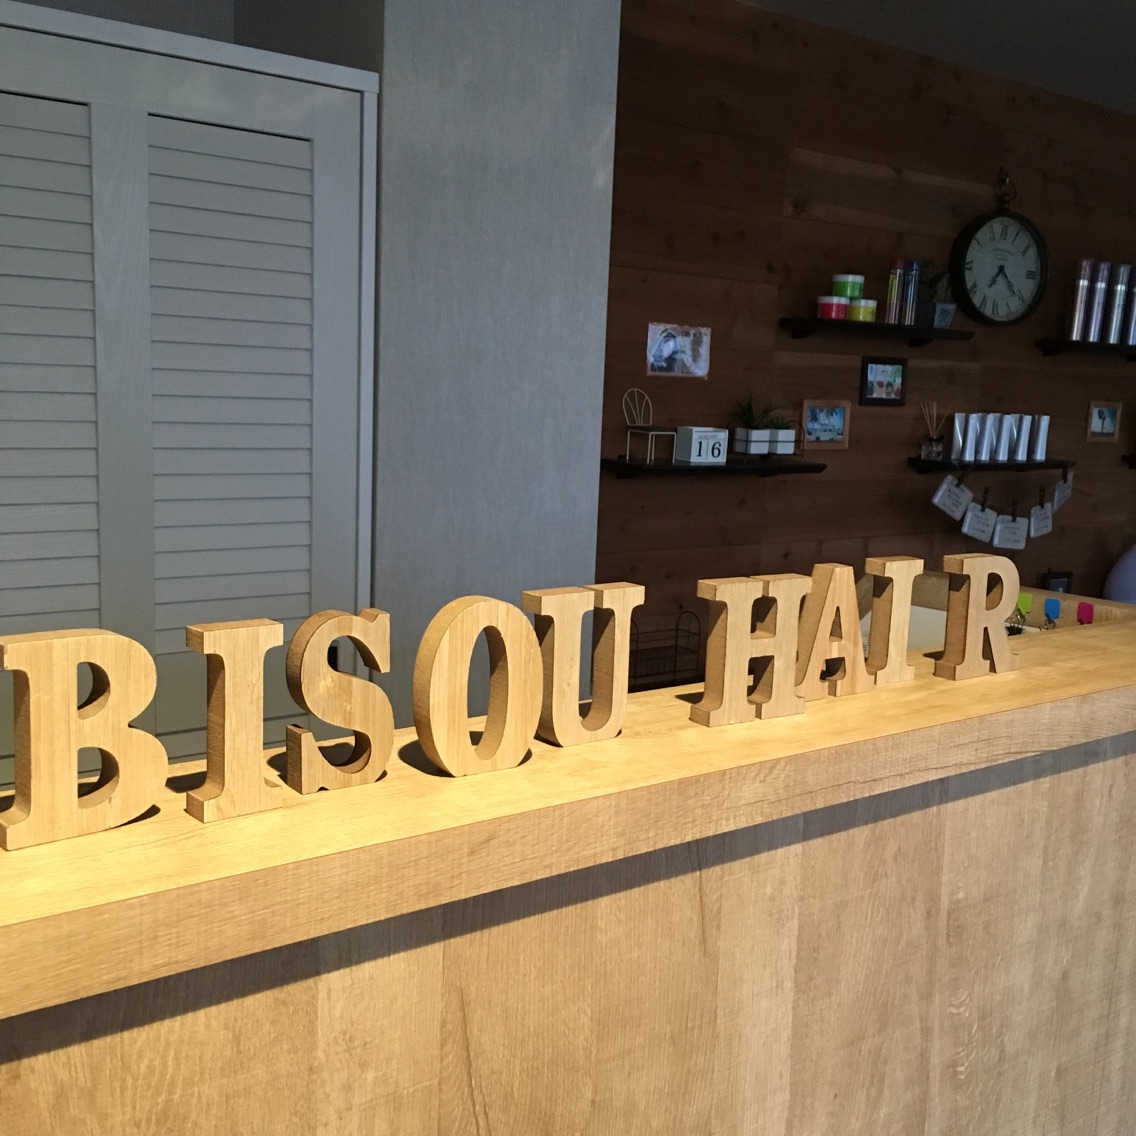 bisouhairpetit店